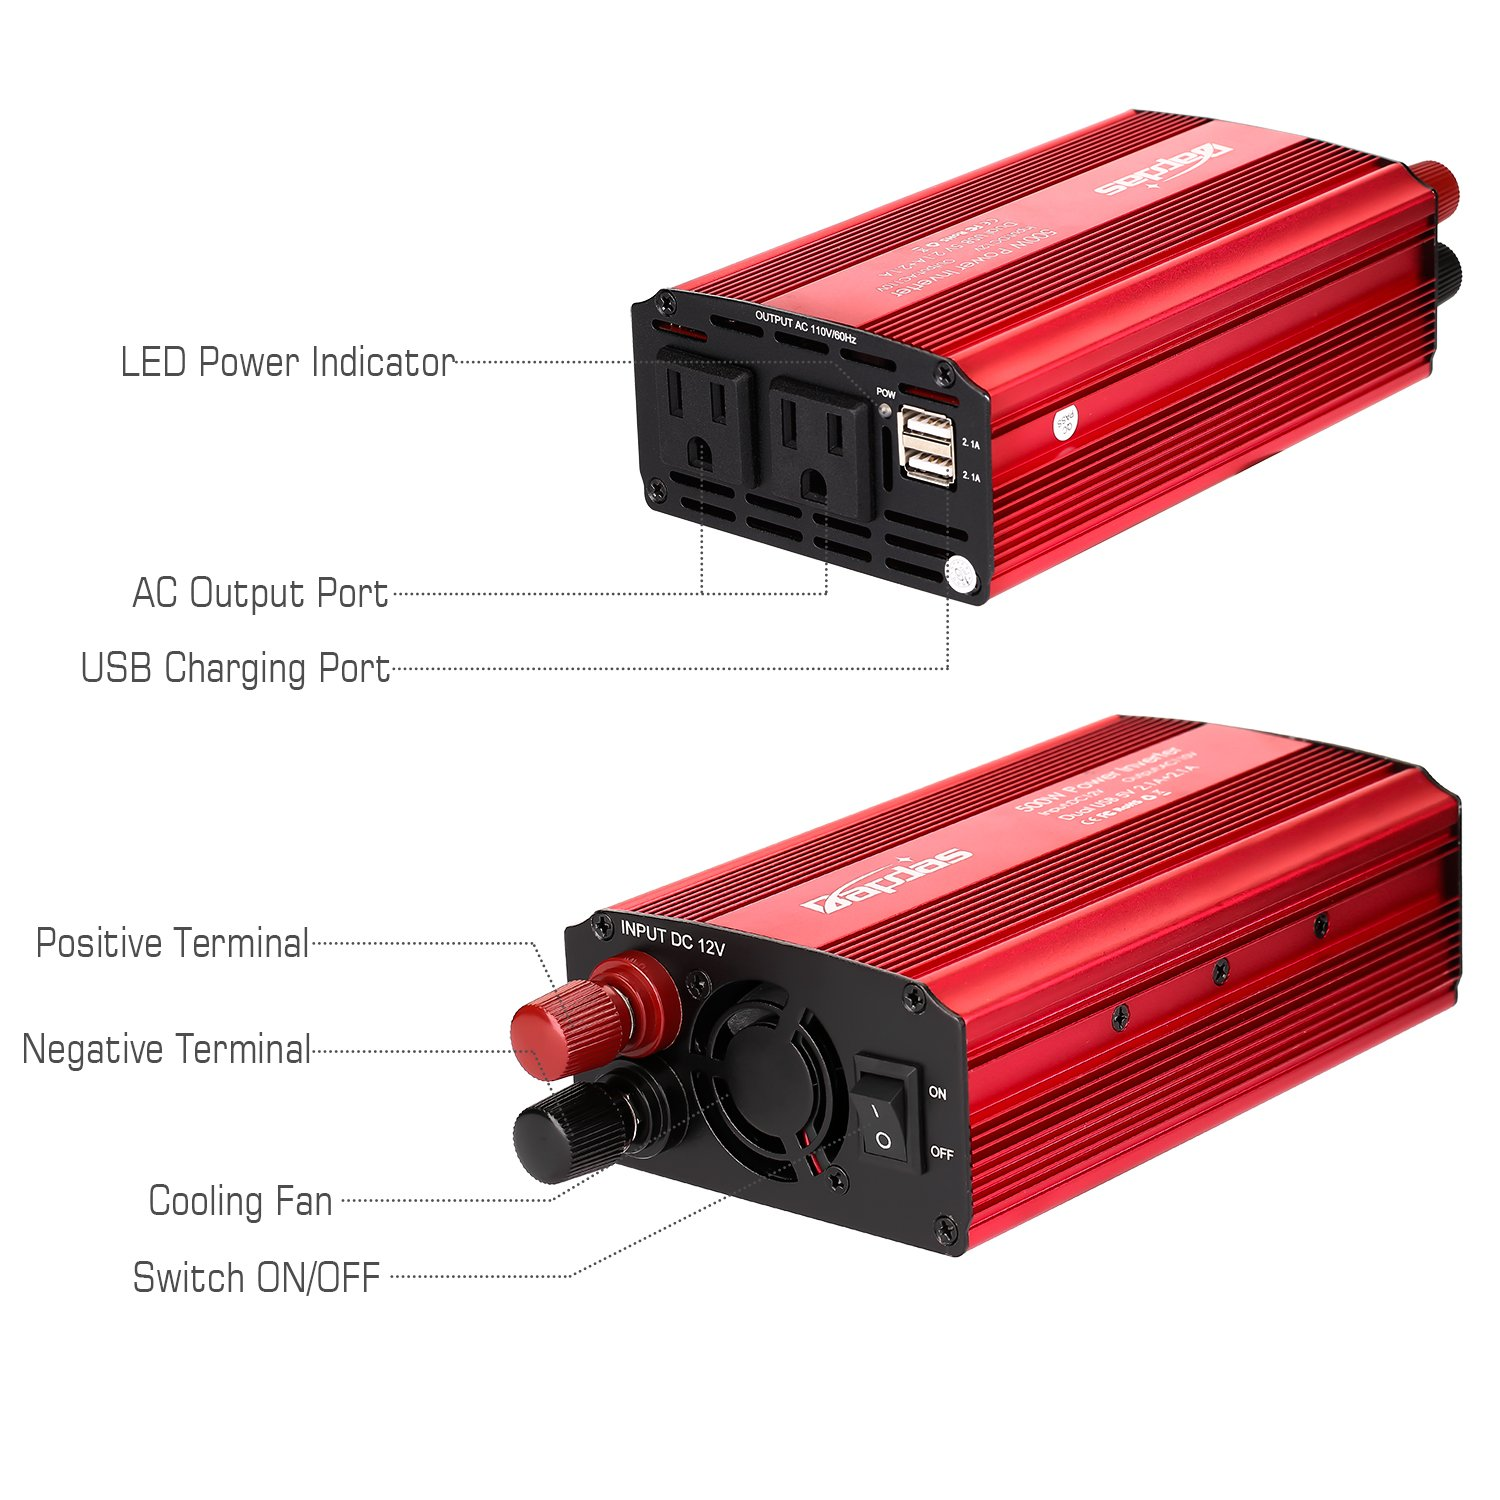 Bapdas 500W Power Inverter Converter DC 12V to AC 110V Car Charger with 4.2A 2 USB Ports Car Power Adapter-Red by Bapdas (Image #1)